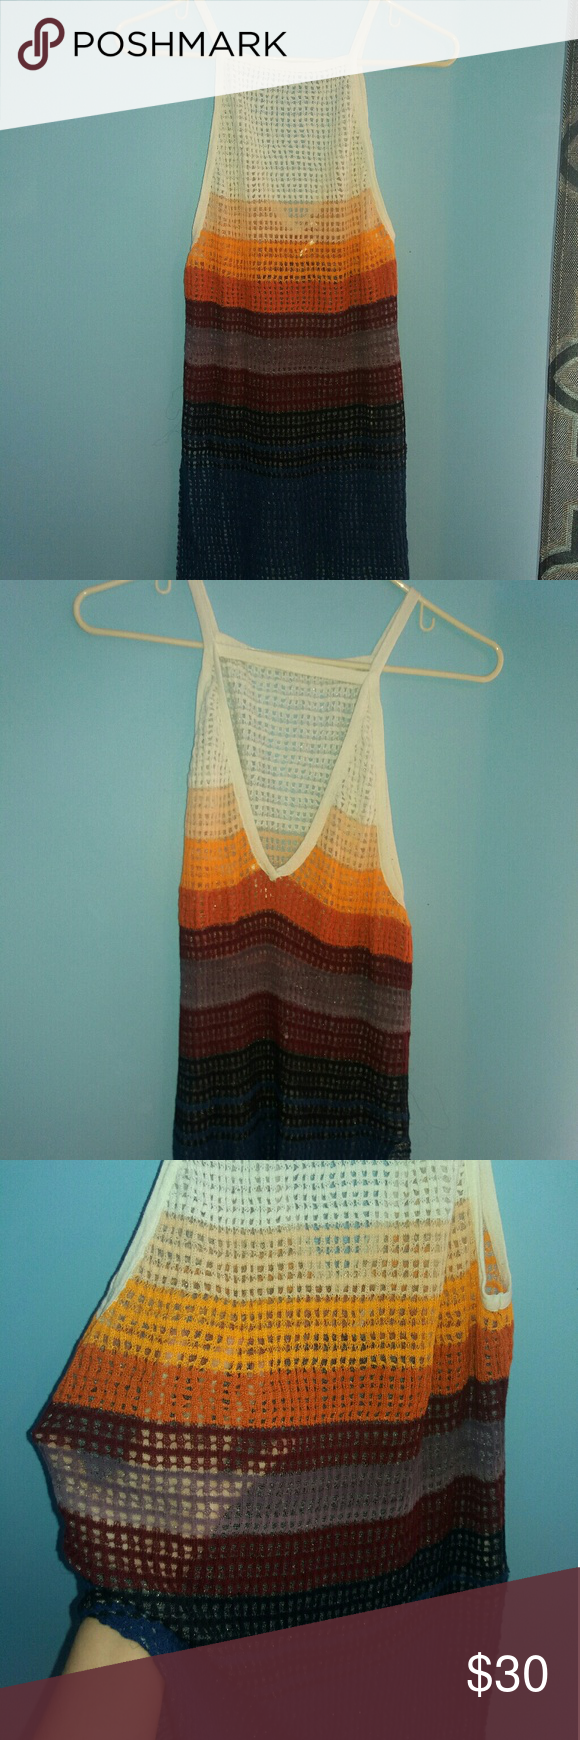 Colorful Free People Top Colorful, v-dip on the back, sheer/knit  ✅ Offers Considered ☺  ✅ Bundle Discounts   ✅ Please use the blue 'offer' button to submit an offer  ✅ Hate paying more for shipping than the actually item? Try to bundle! The more you bundle I will help you out with a higher discount percent!  ✅ All pieces are lightly used Free People Tops Tank Tops